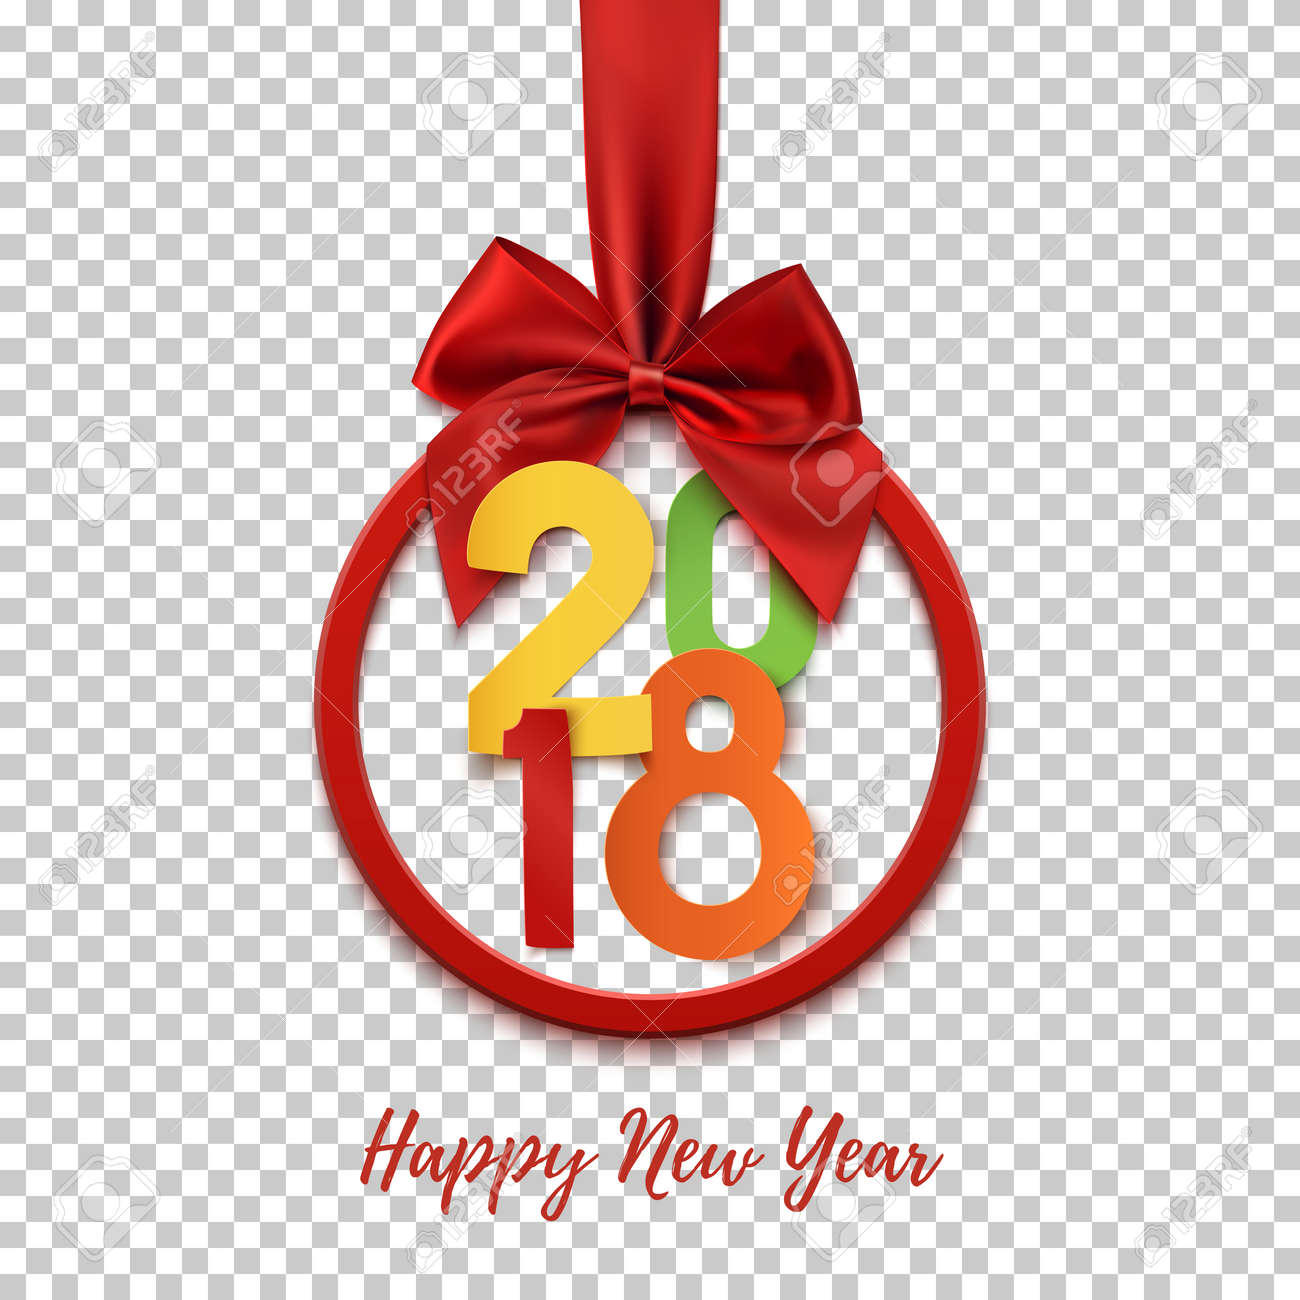 happy new year 2018 round banner with red ribbon and bow on transparent background